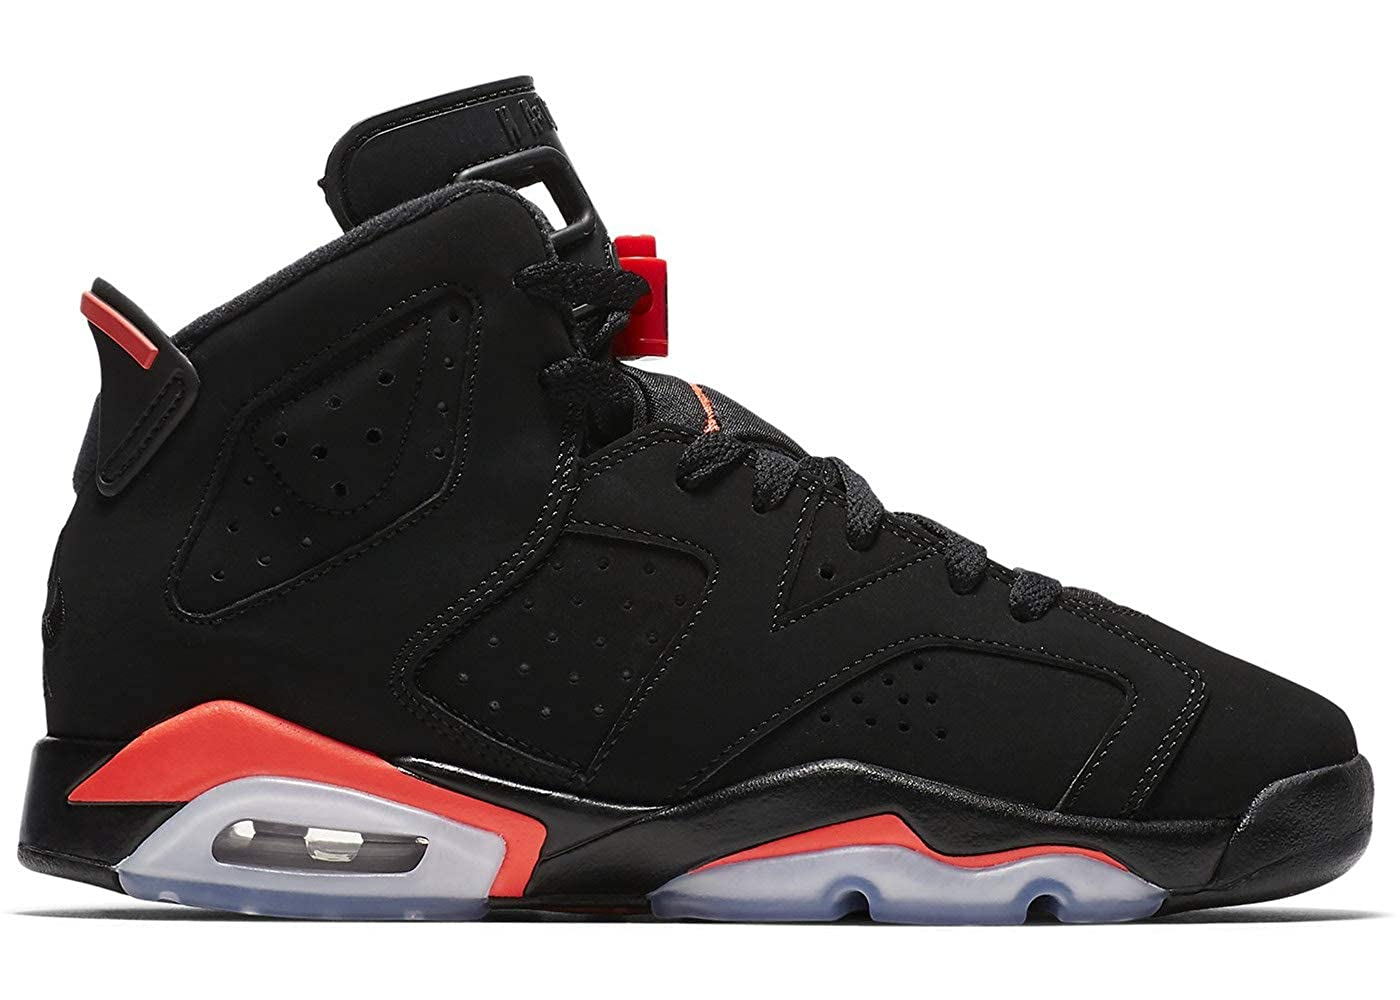 premium selection 88927 6aea4 Amazon.com   Nike Kids GS Air Jordan 6 Retro Basketball Shoe   Basketball